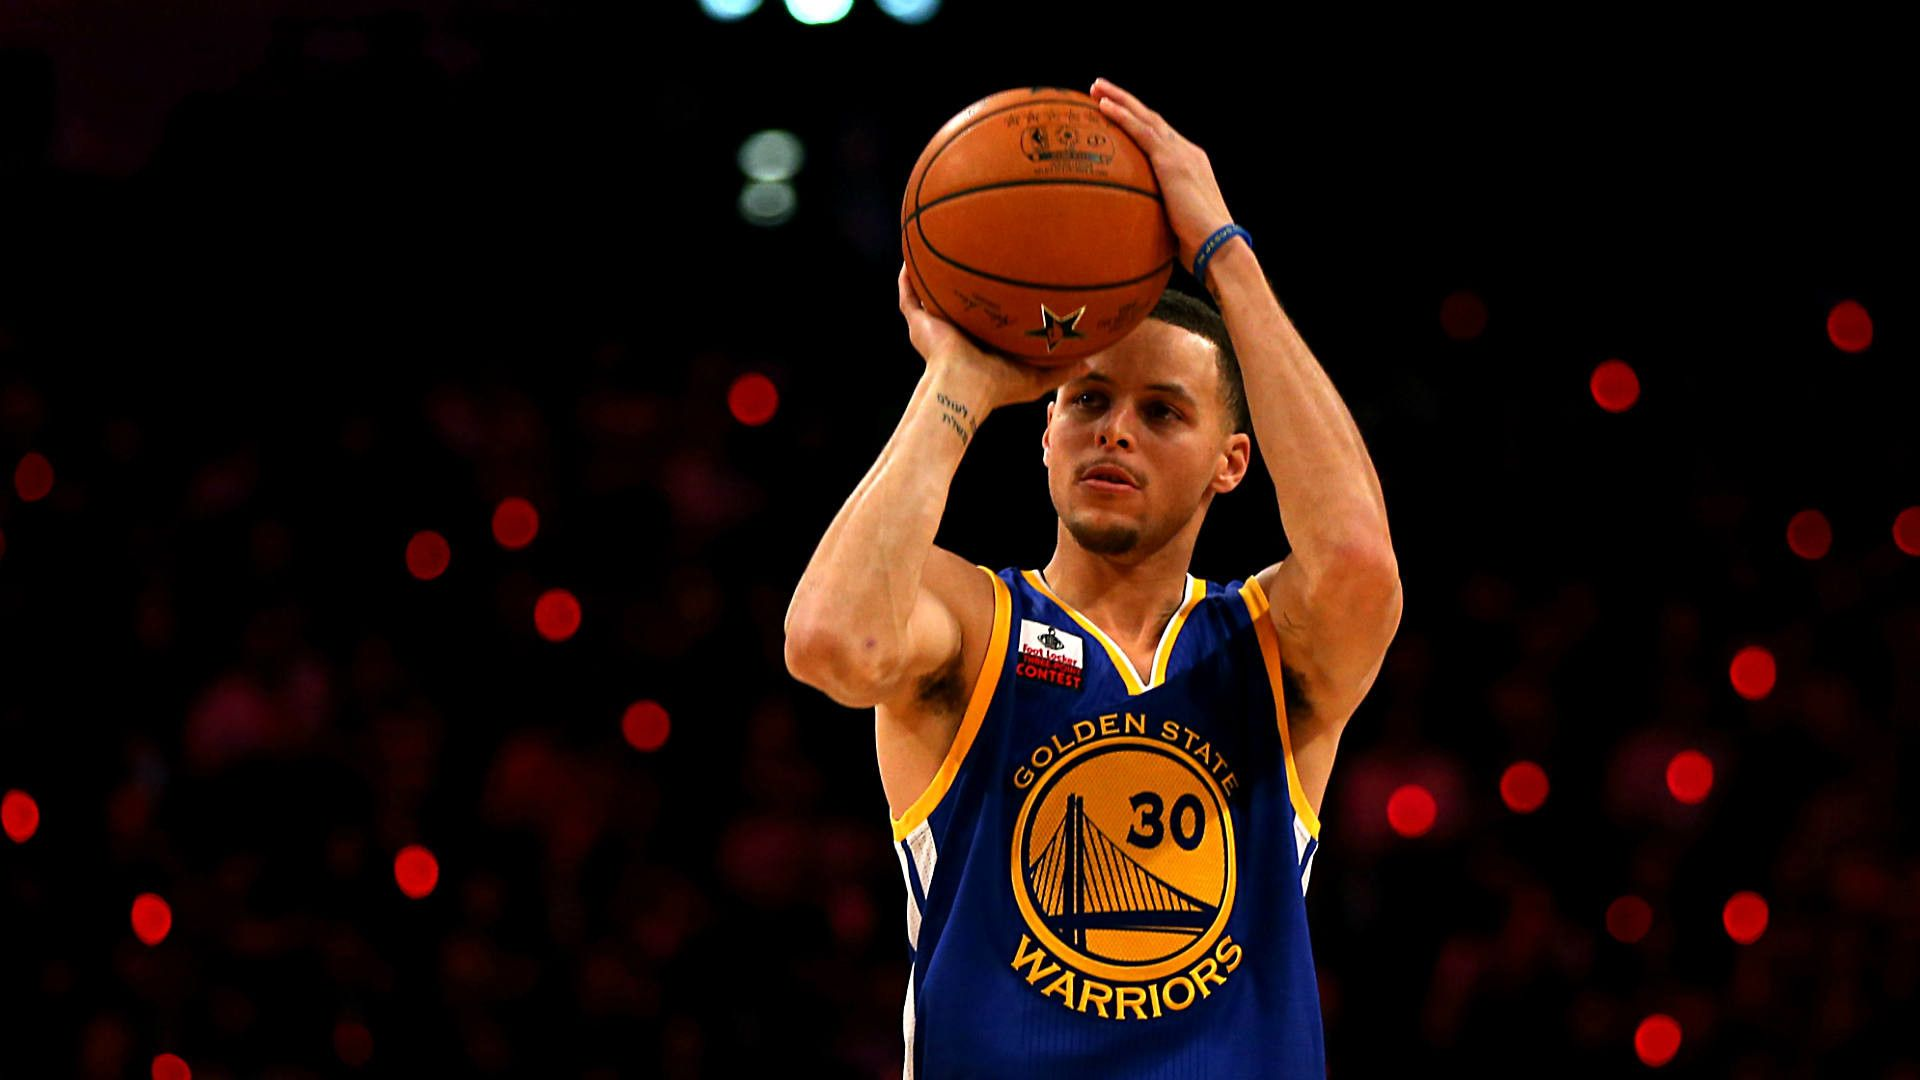 stephen curry wallpaper 2020